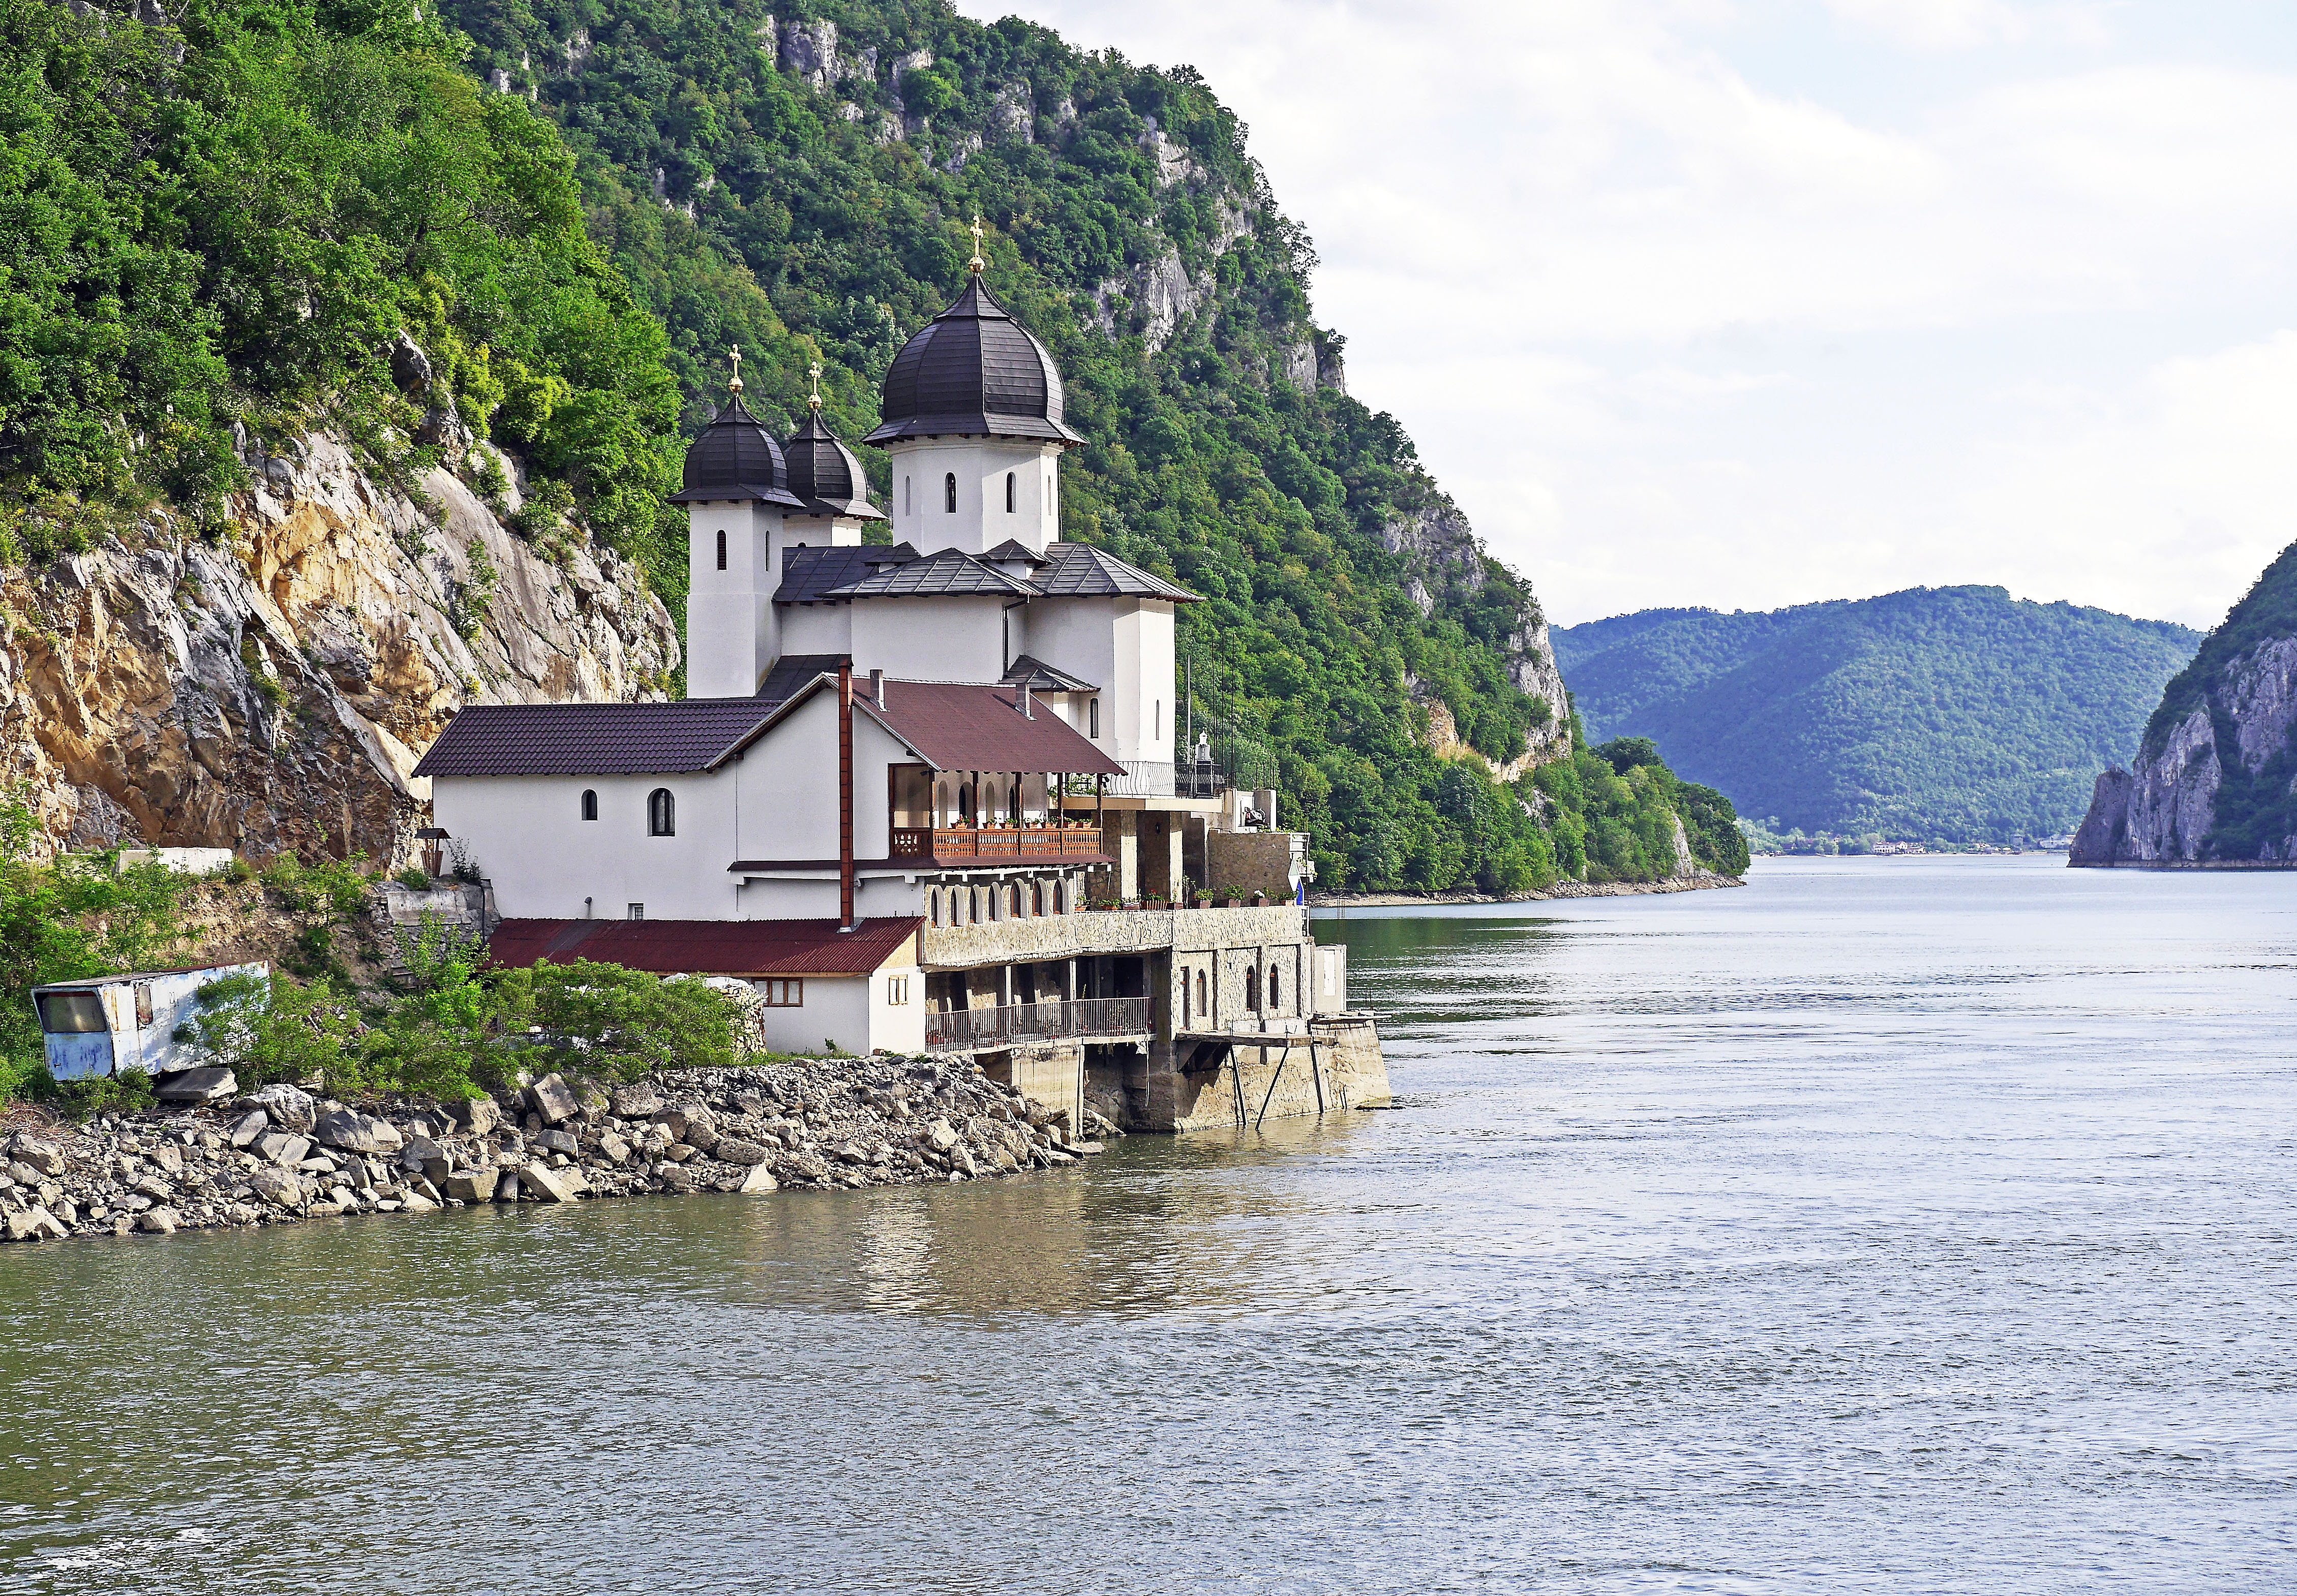 iron-gate-karparten-danube-gorge-abbey-163572